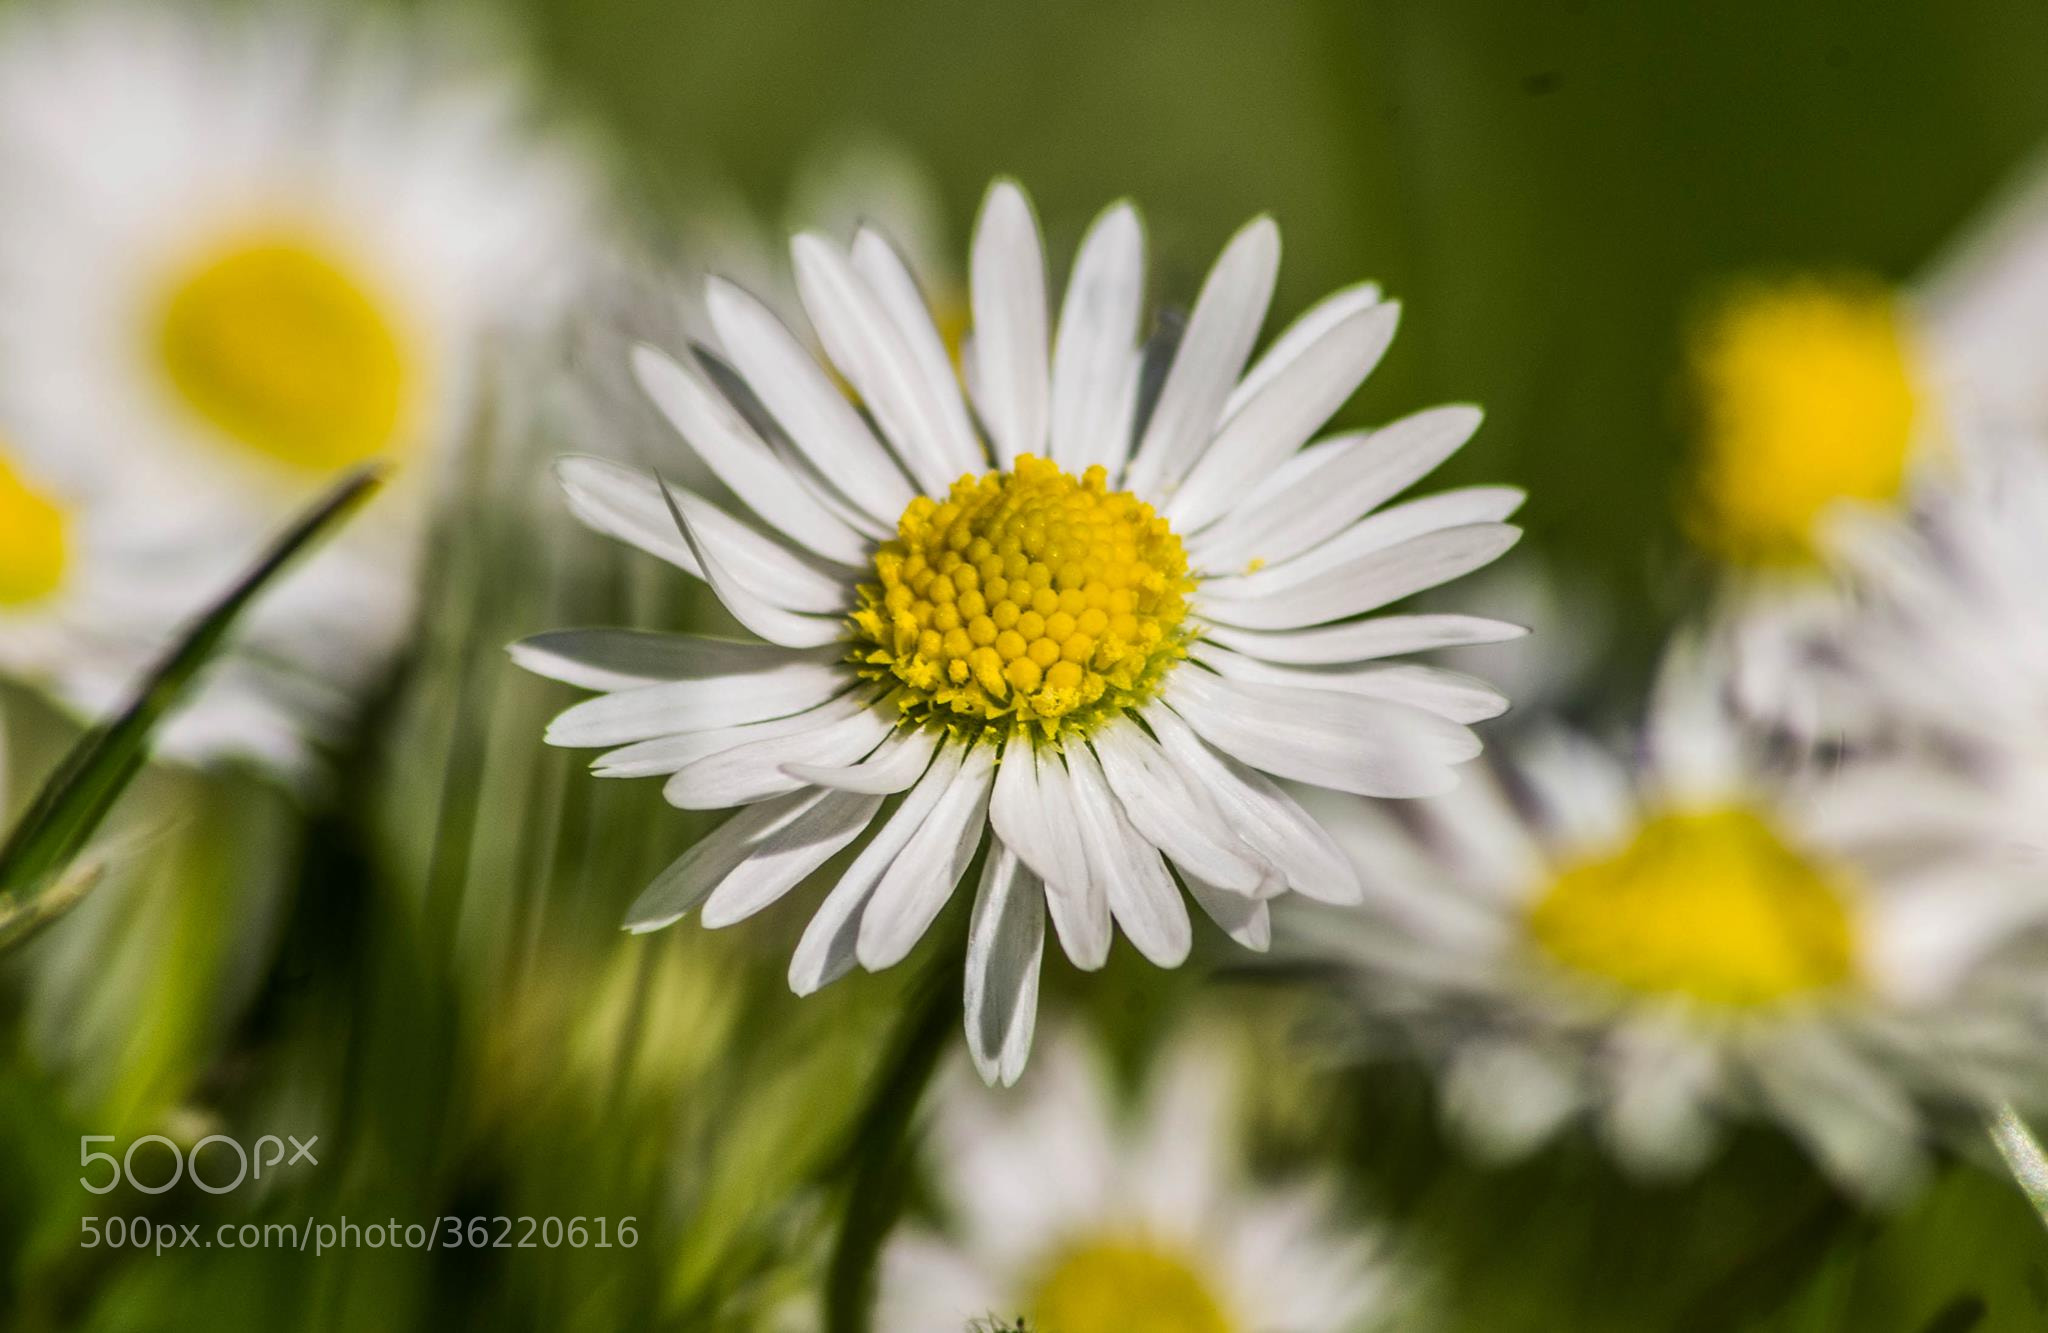 Photograph Daisy by Lee Ashman on 500px